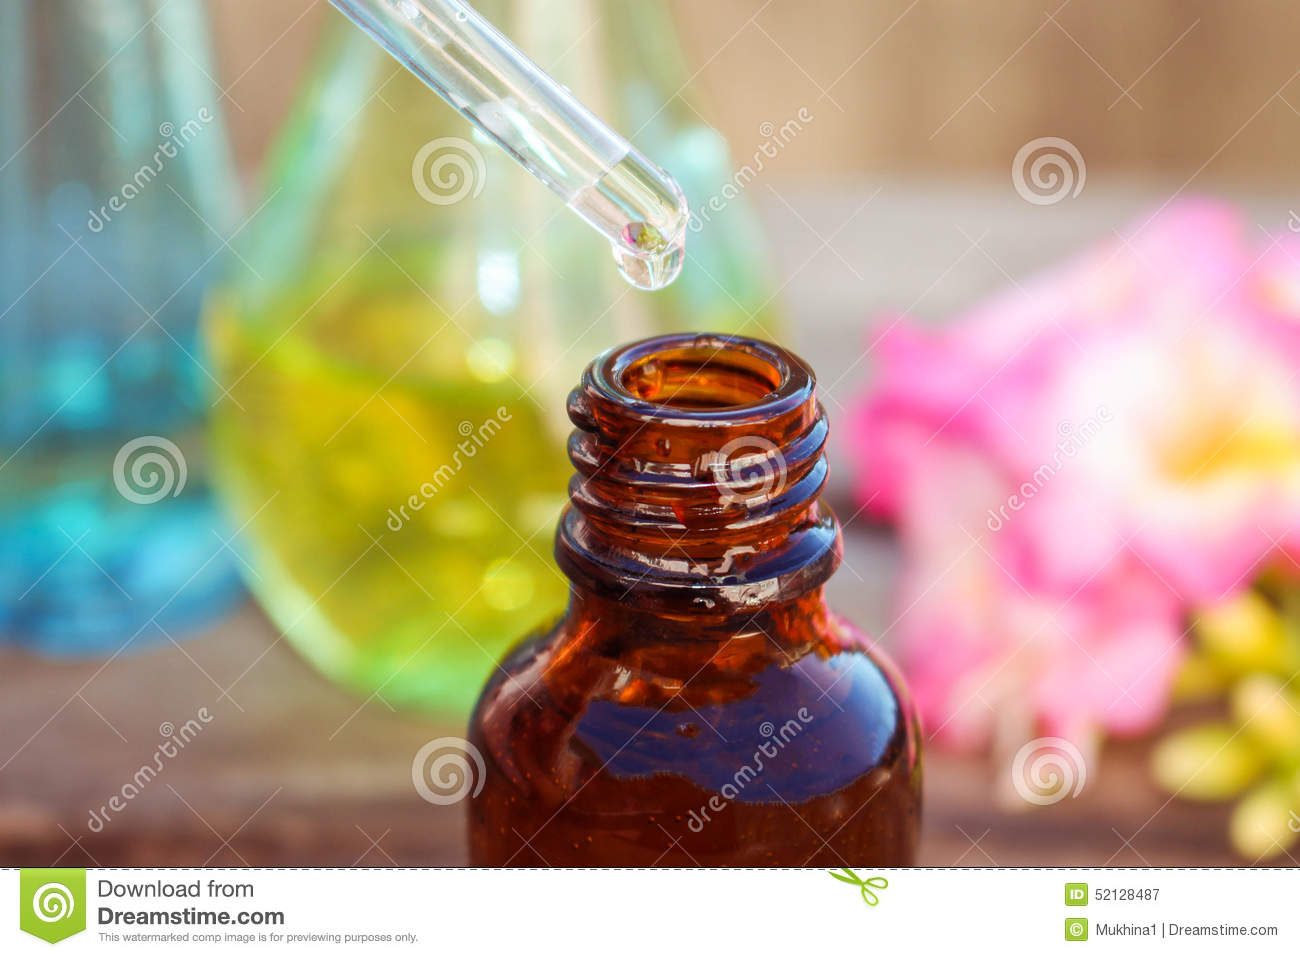 Drop of oil dripping from pipette into bottles of essential oil